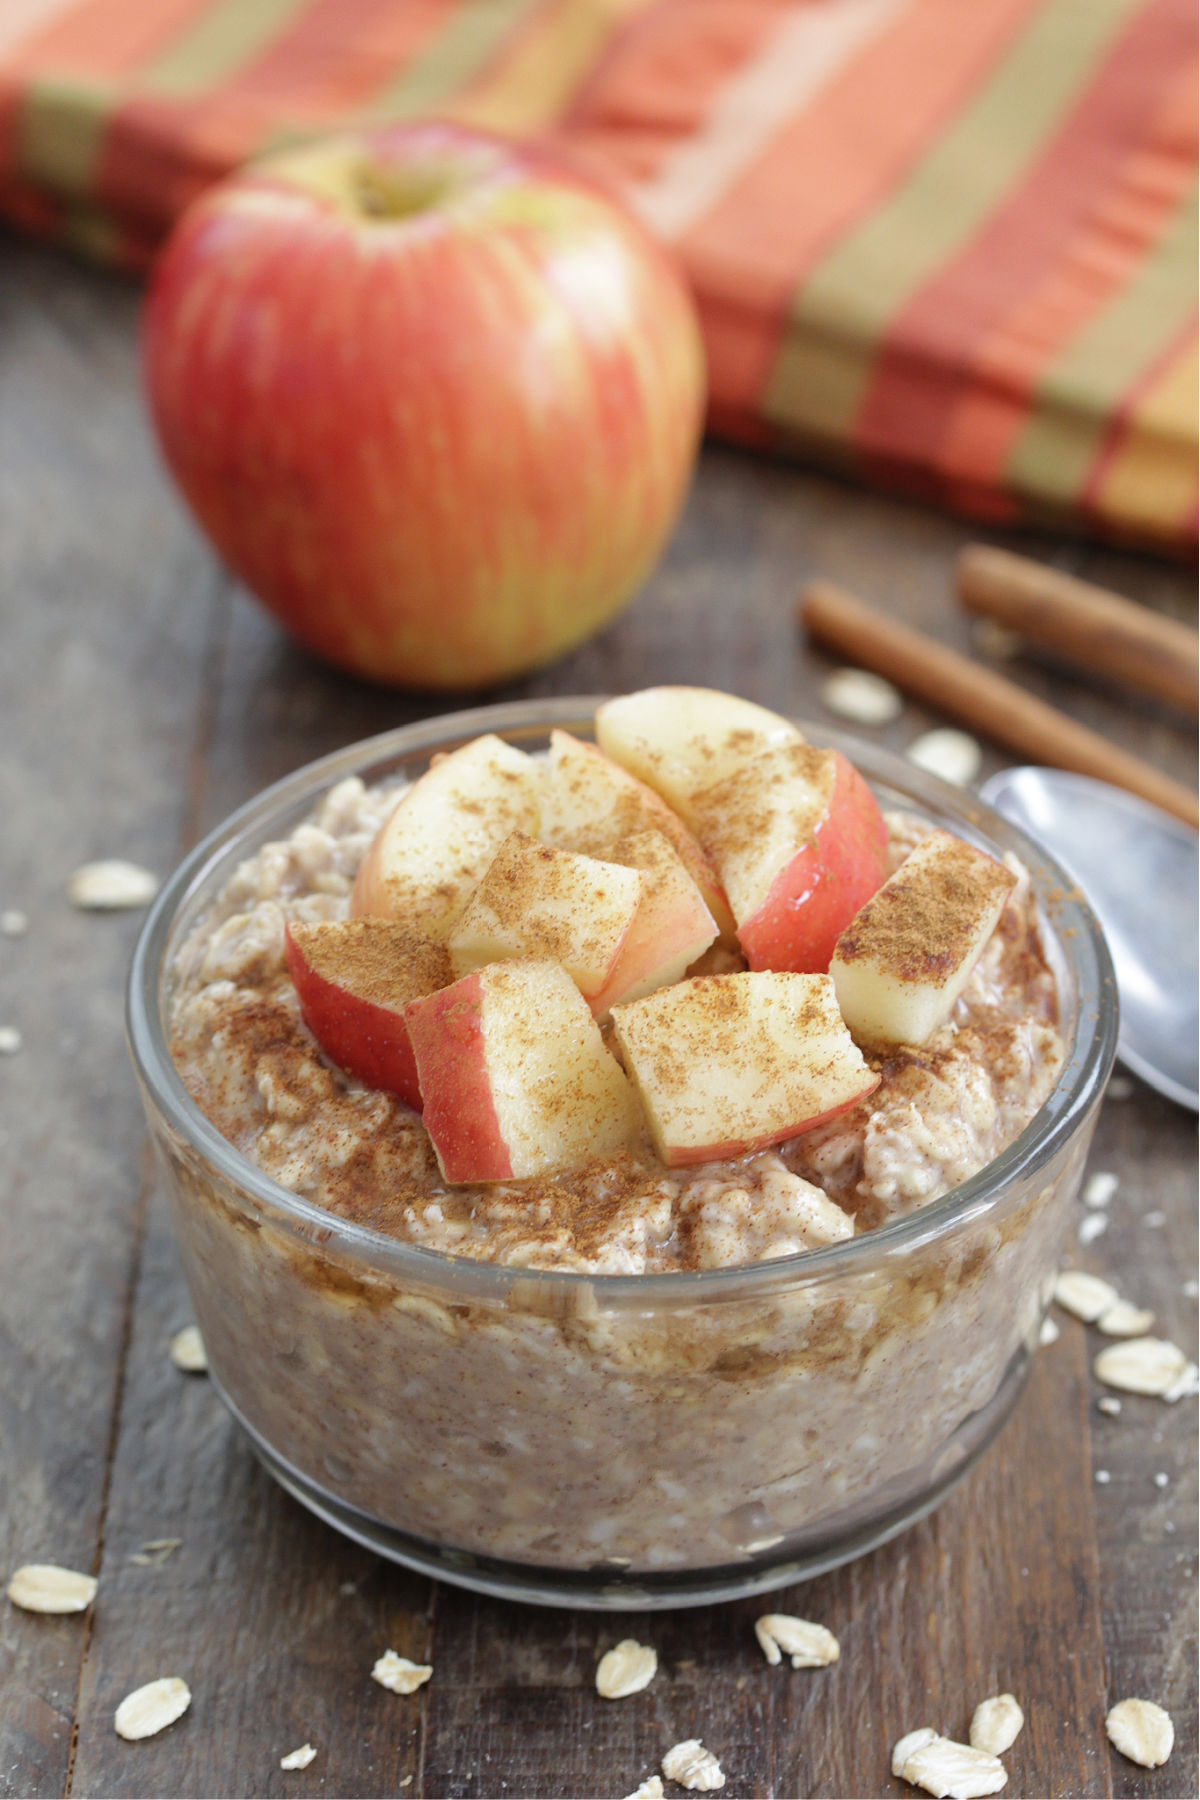 Apple Cinnamon Overnight Oats in a glass jar with diced apples and cinnamon on top